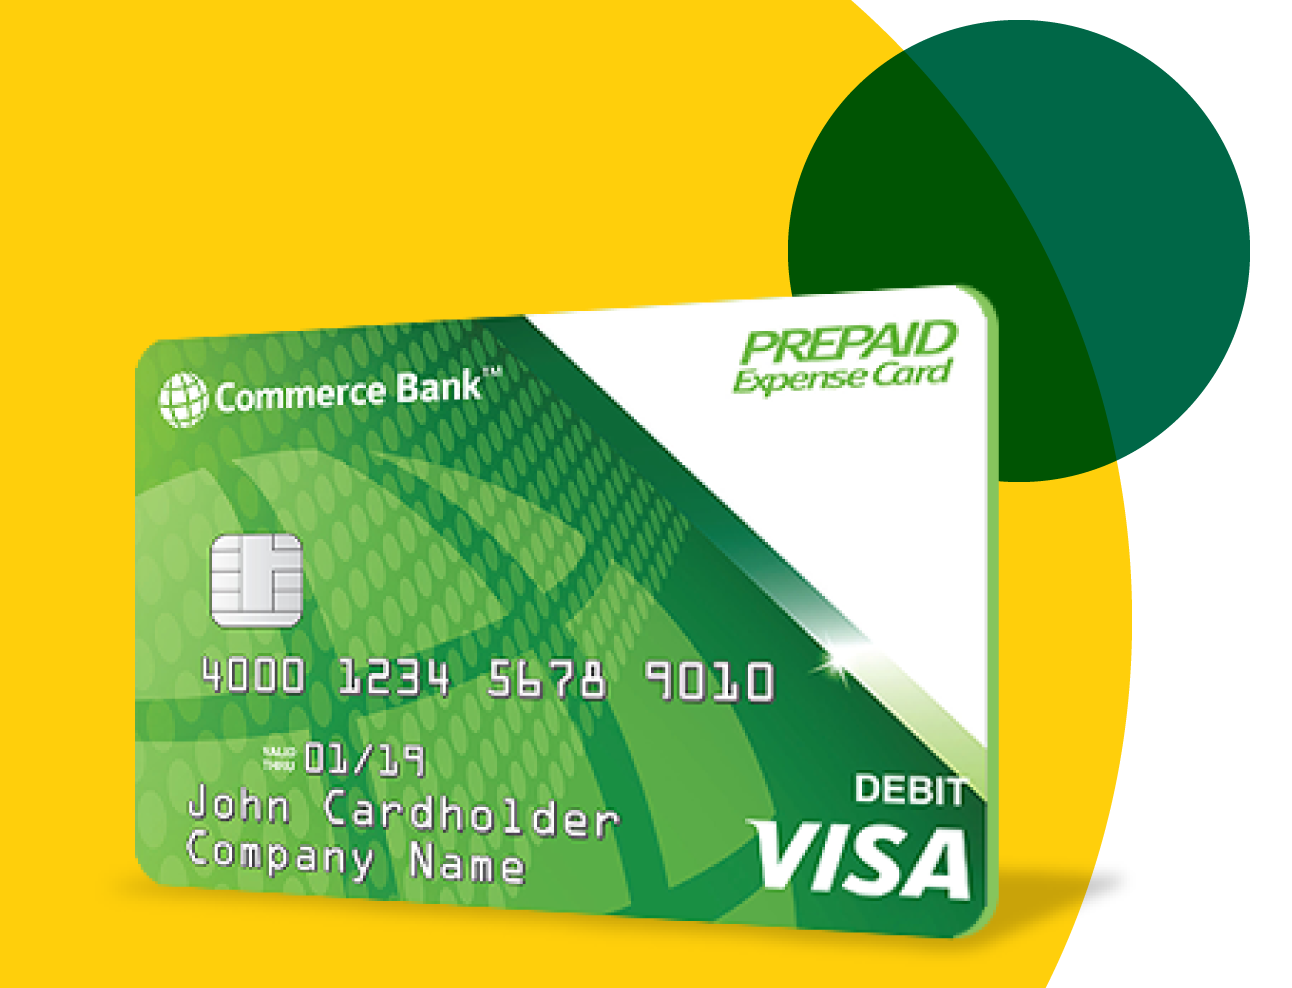 Business Prepaid Expense Cards Commerce Bank